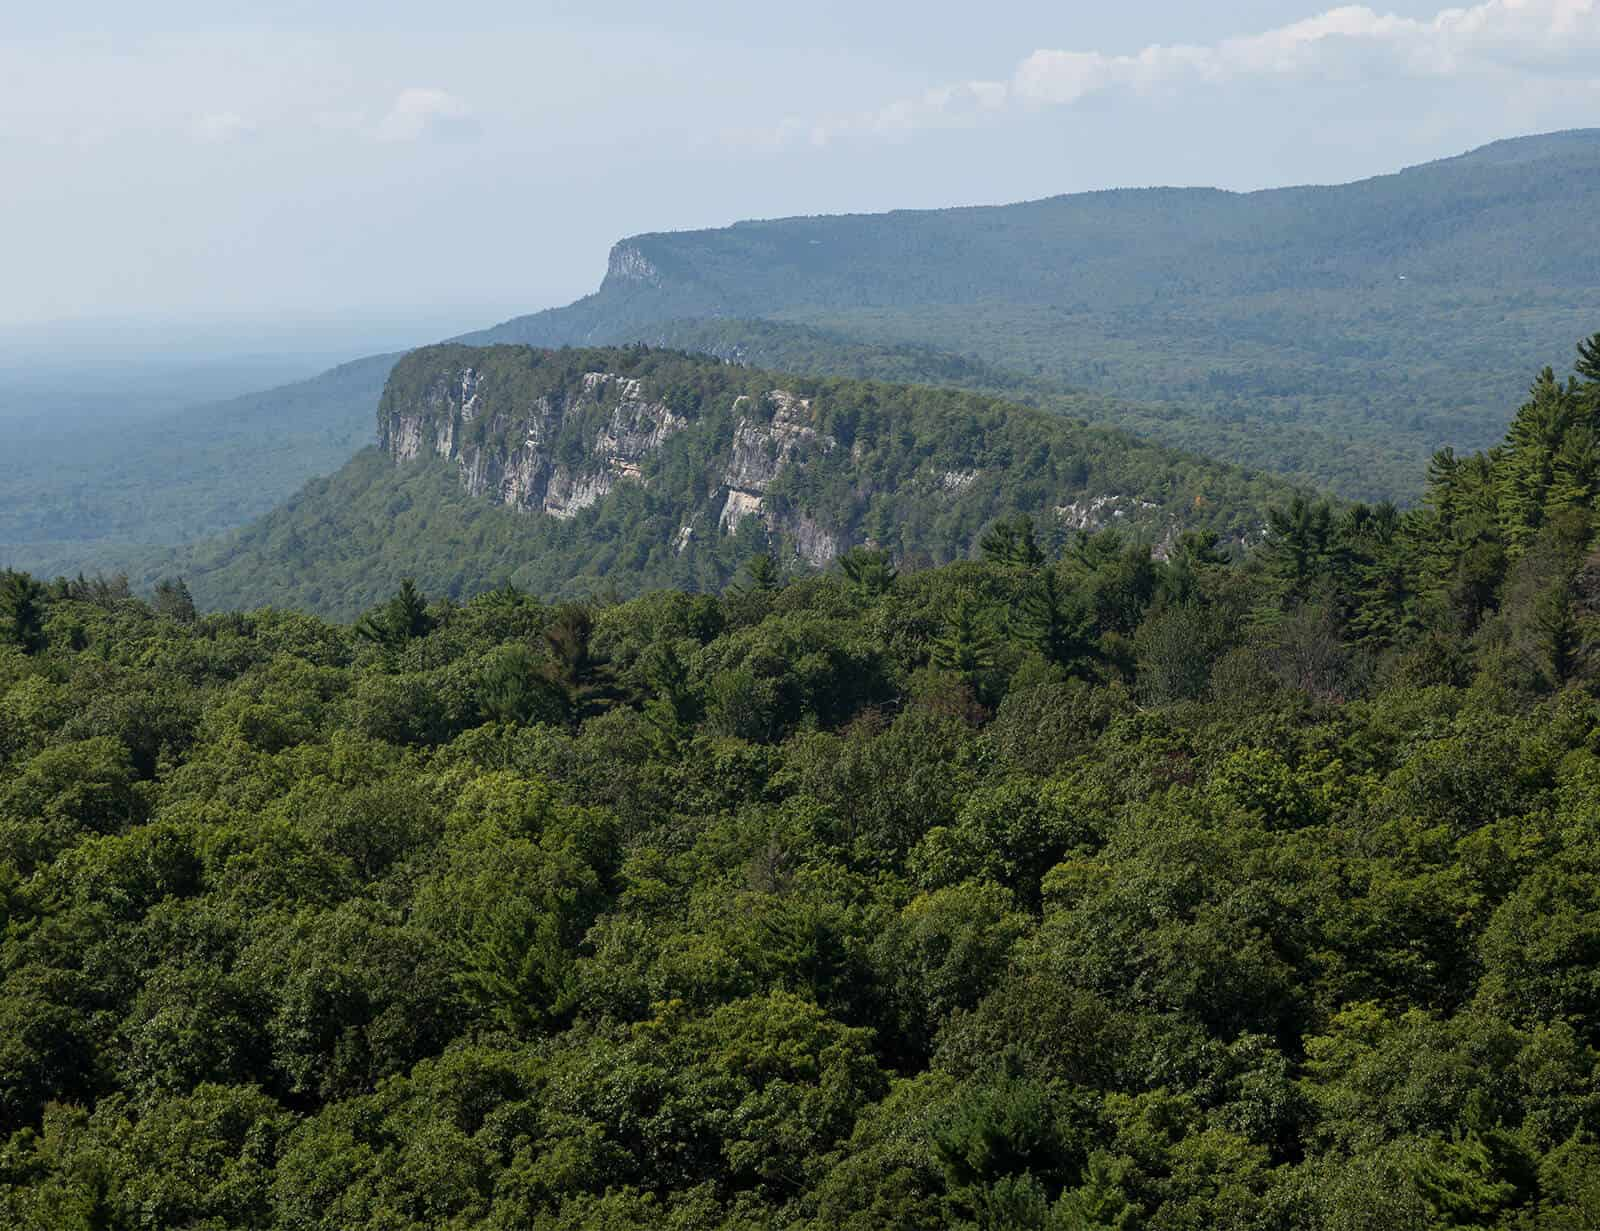 Mohonk Mountain header